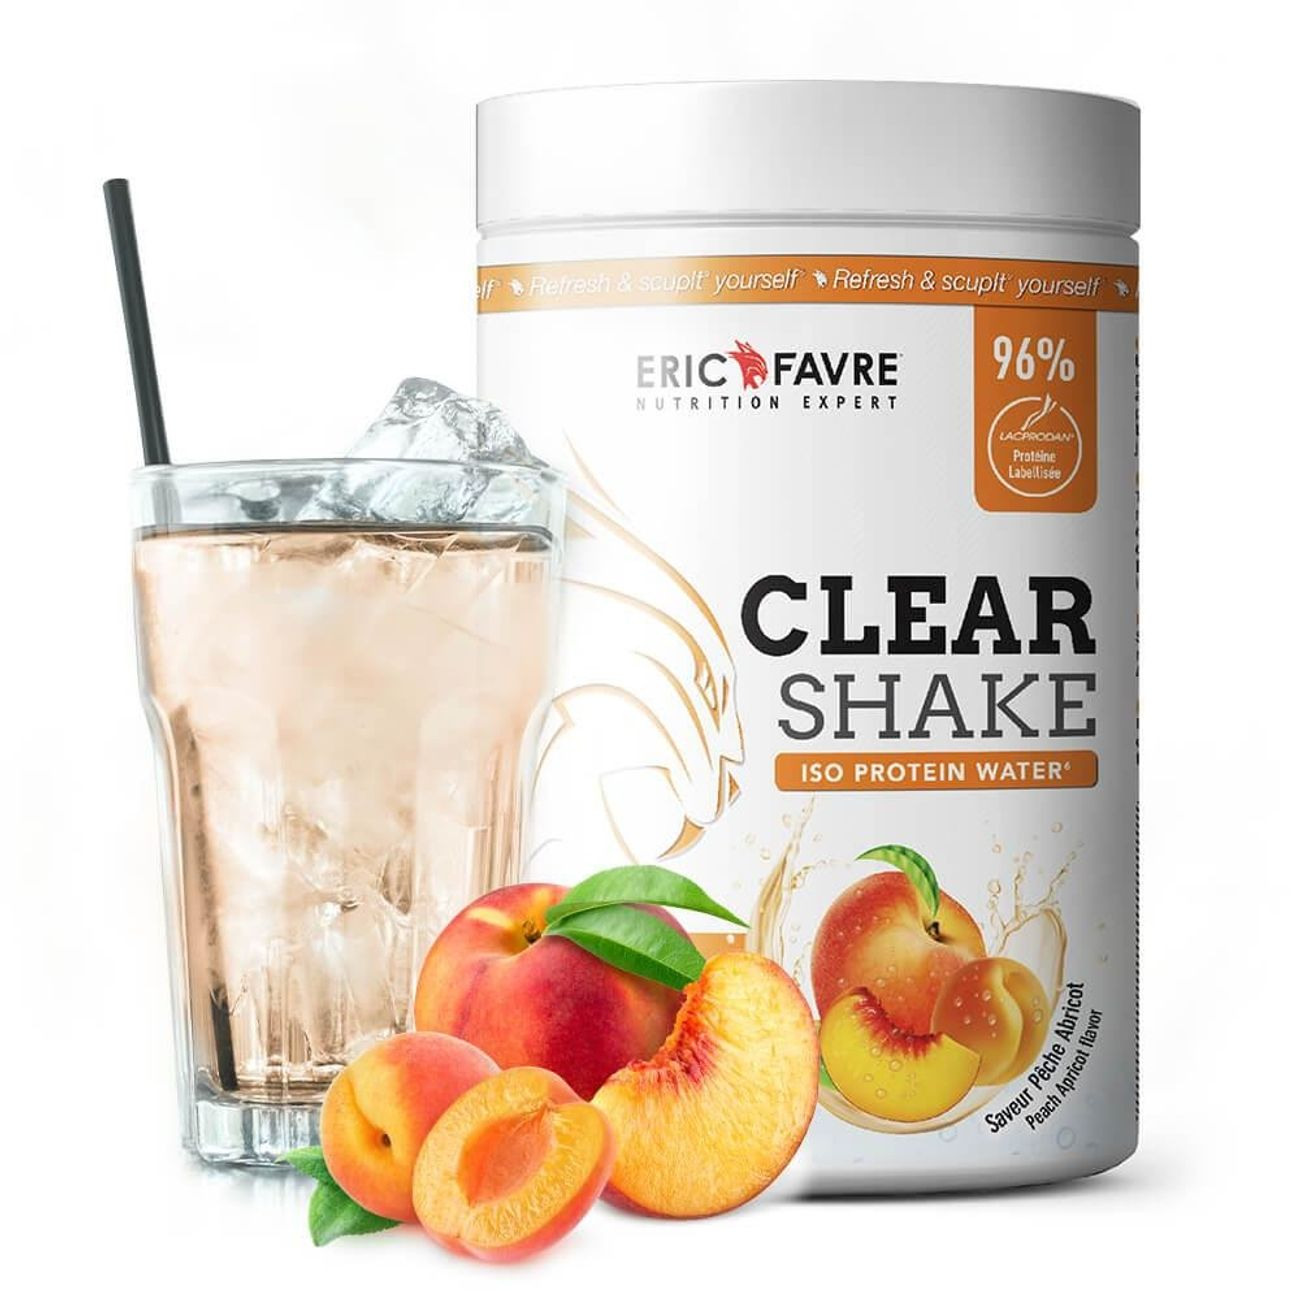 NUTRITION   ERIC FAVRE Clear Shake - Iso Protein Water - Proteines - Pomme Poire - Eric Favre